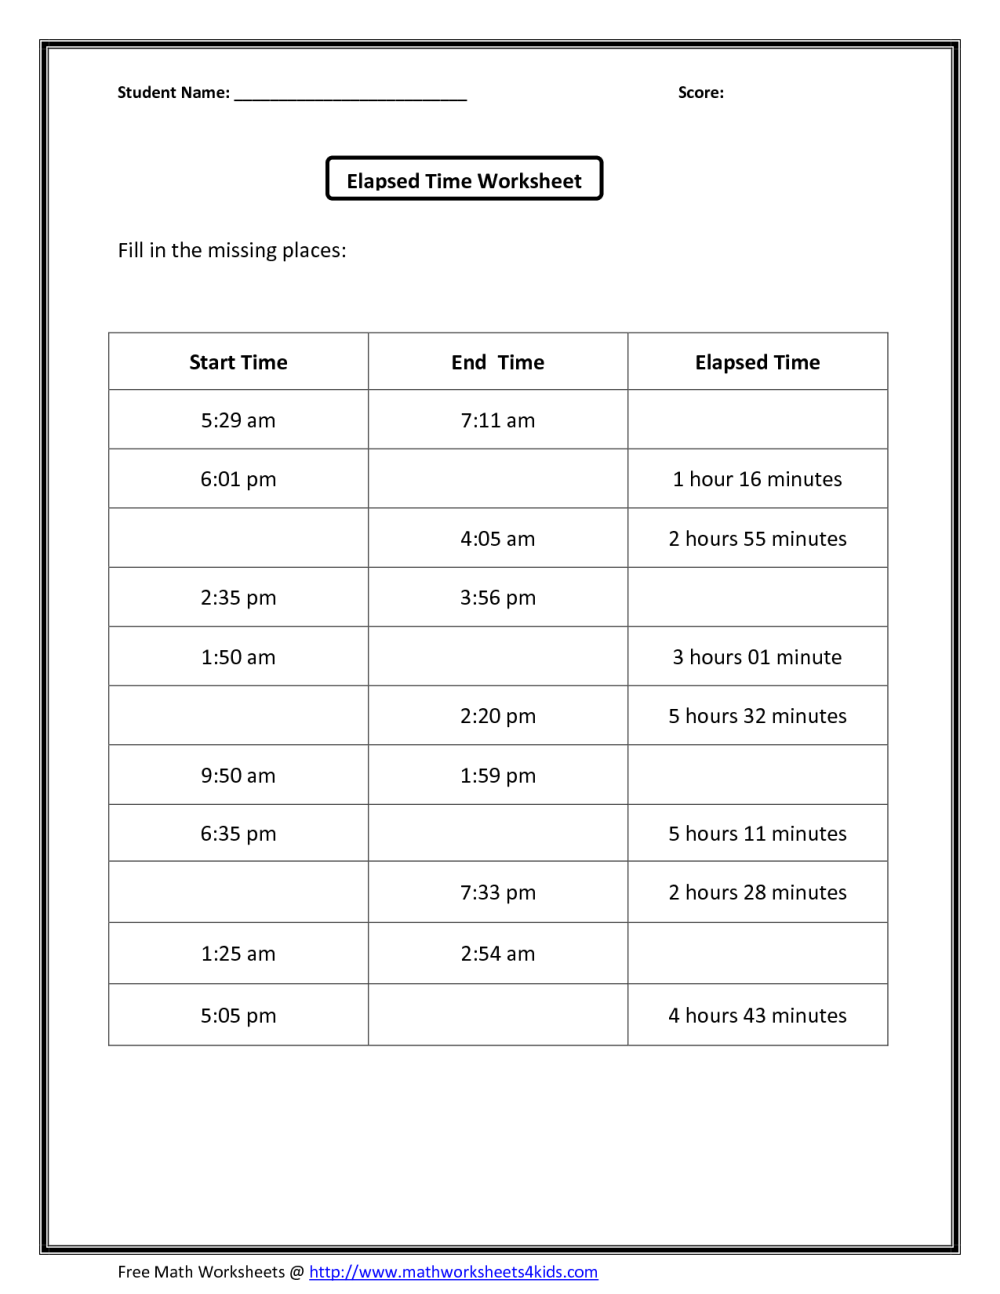 medium resolution of Elapsed Time Worksheets 2nd Grade   Printable Worksheets and Activities for  Teachers